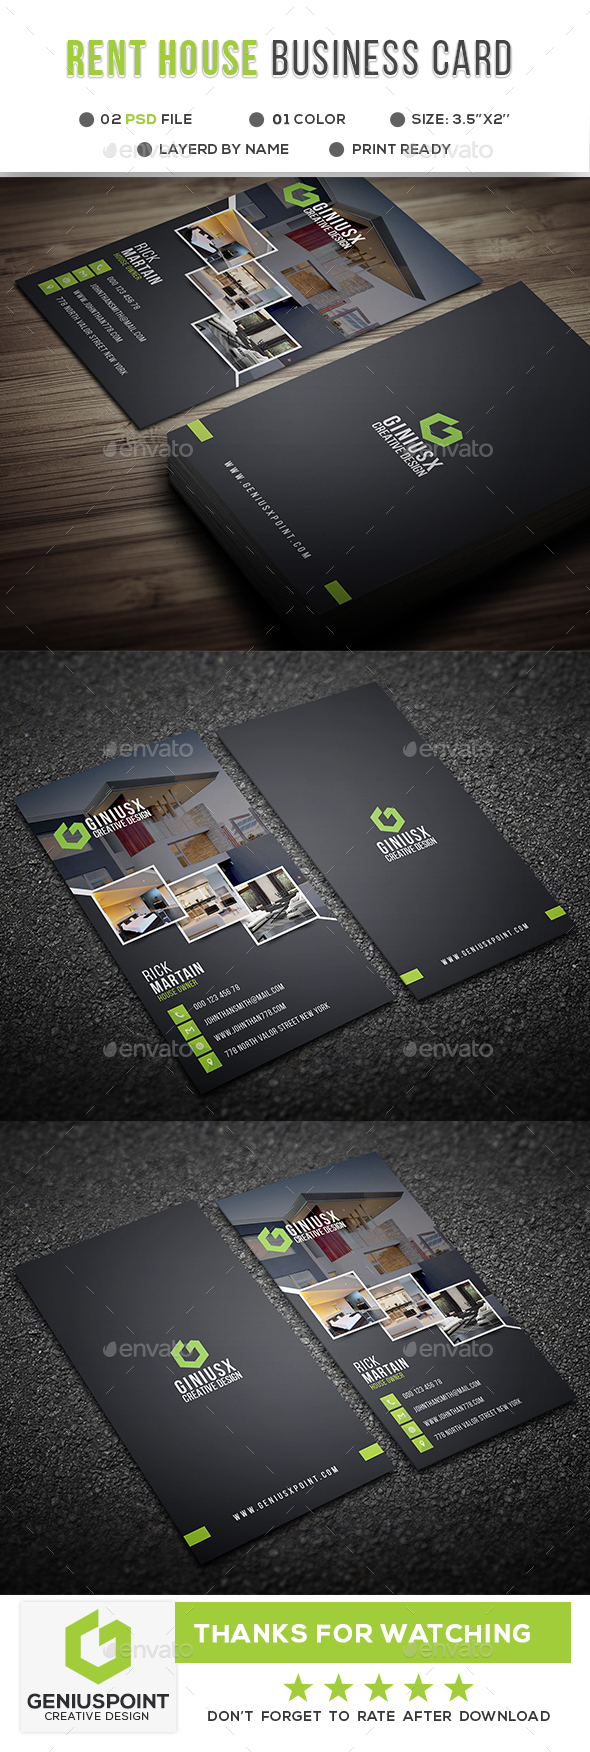 Rent A House Business Card